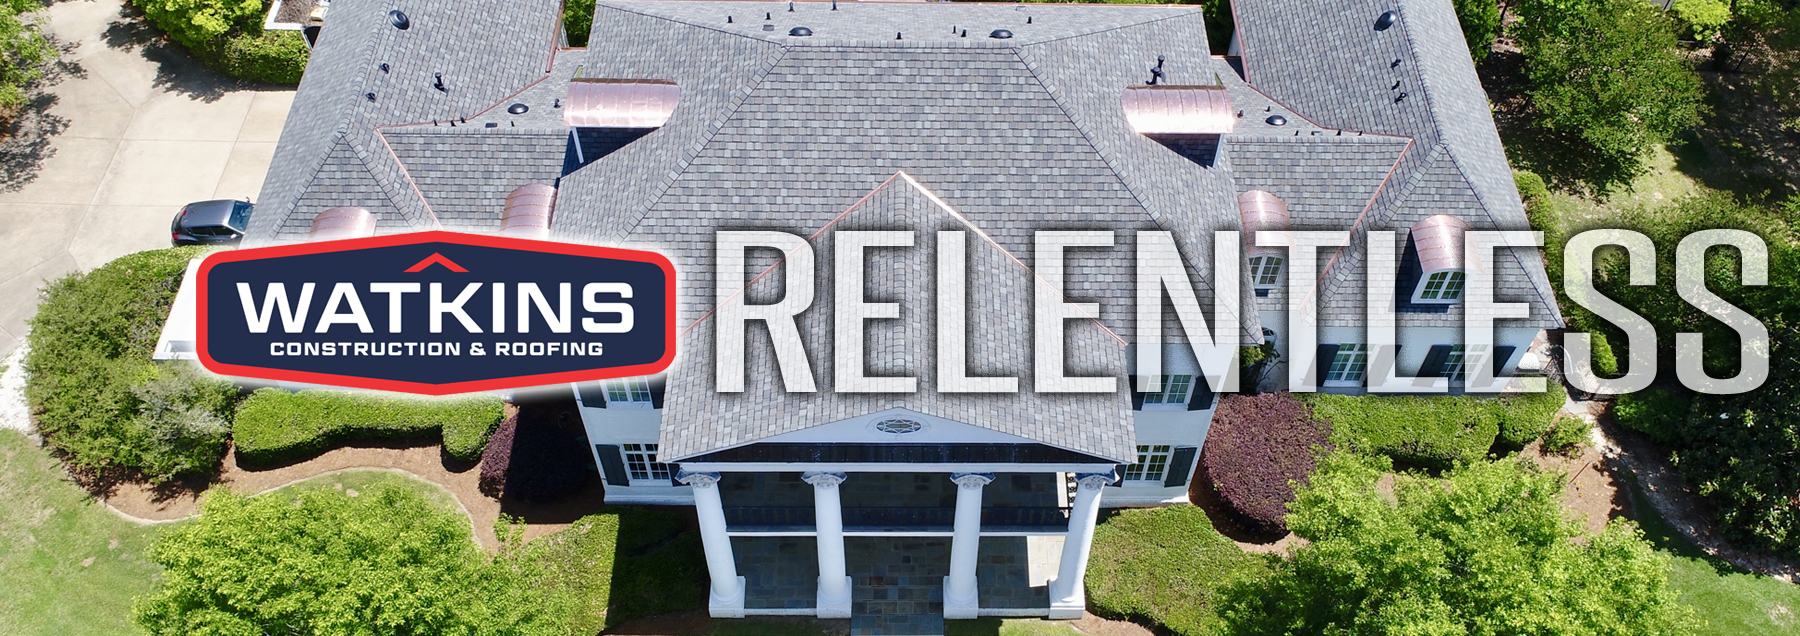 Watkins Construction & Roofing reviews | 1072 High St. - Jackson MS